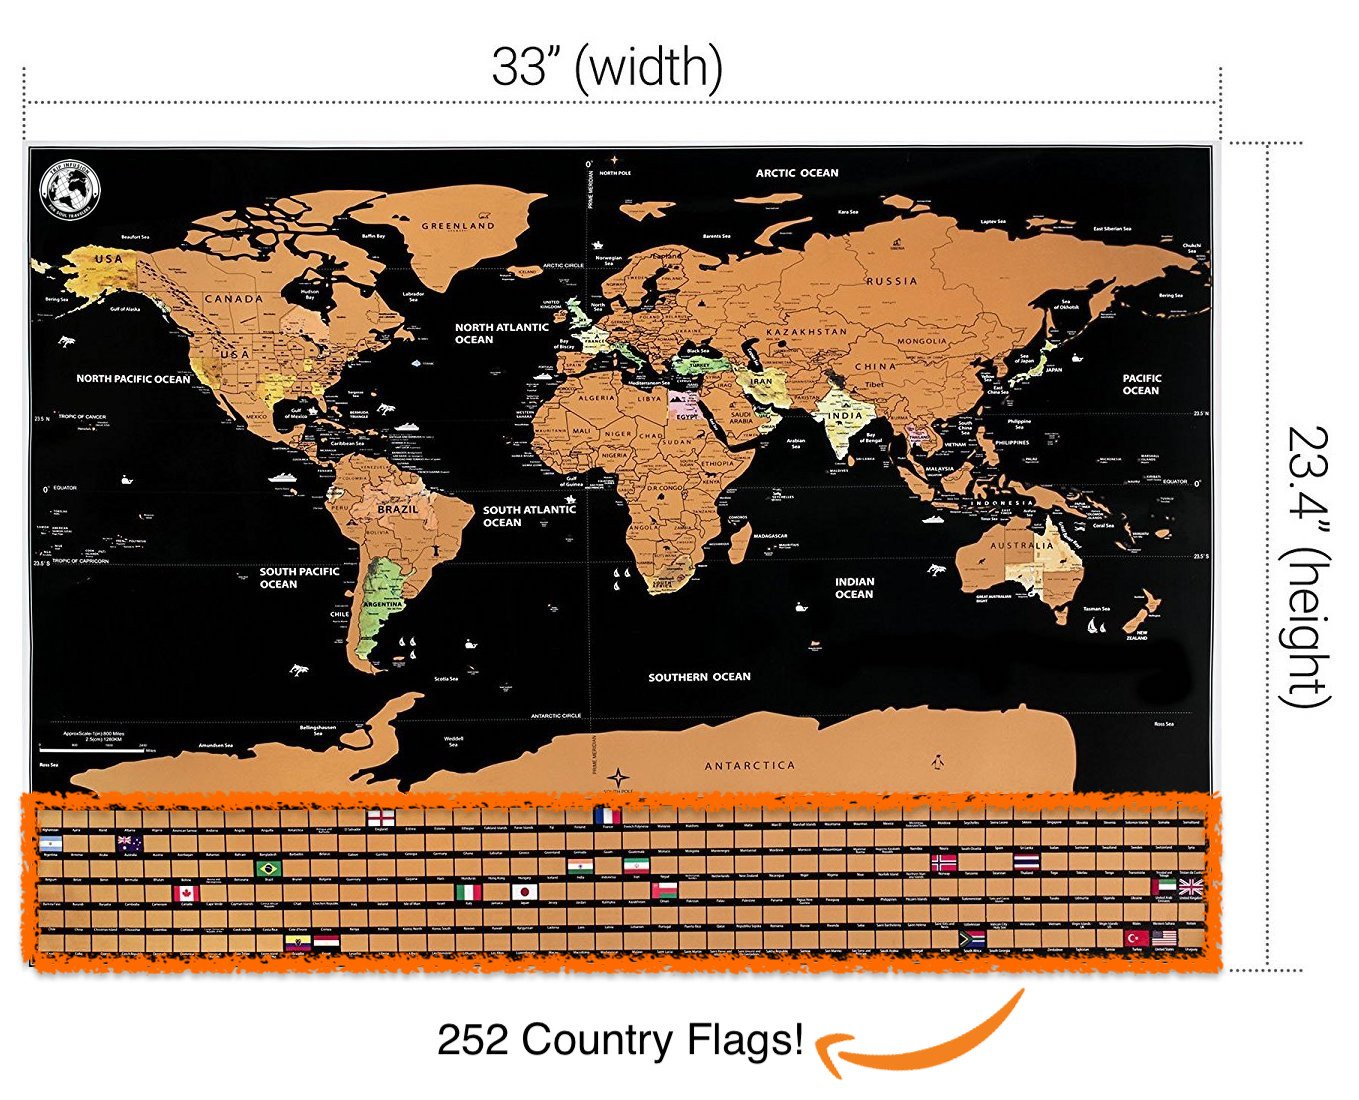 New Scratch Off Map Of The World Vacation Earth Poster Large XL Big Size Bonus Accessories, Detailed Design US Canada North South America Europe Asia States Outlined Trip Travel Planner Global Tracker by Tripinfusion (Image #4)